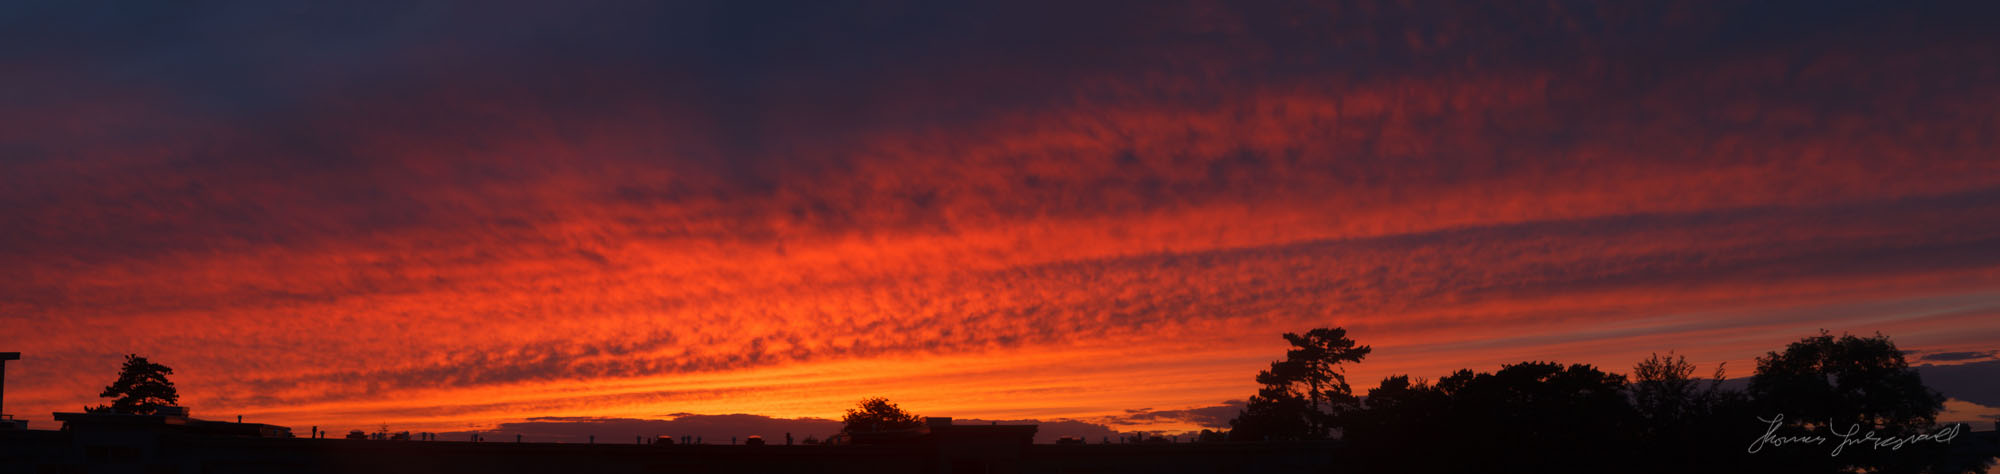 Amazing sky over Dublin tonight. Panorama from 8-9 shots!